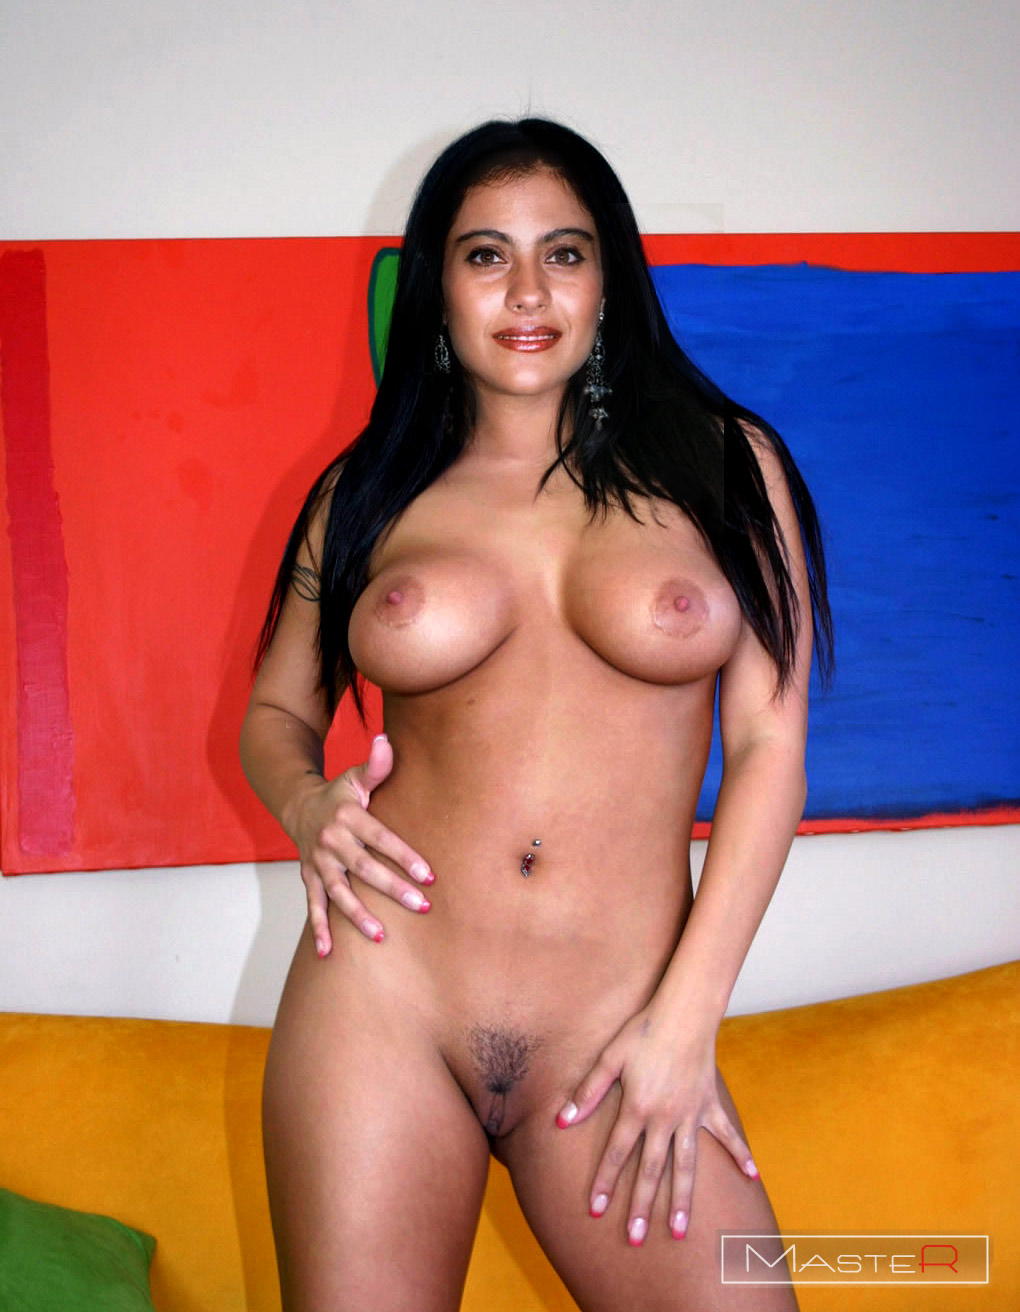 Tabu Nude Showing Boobs And Pussy Original Source Image